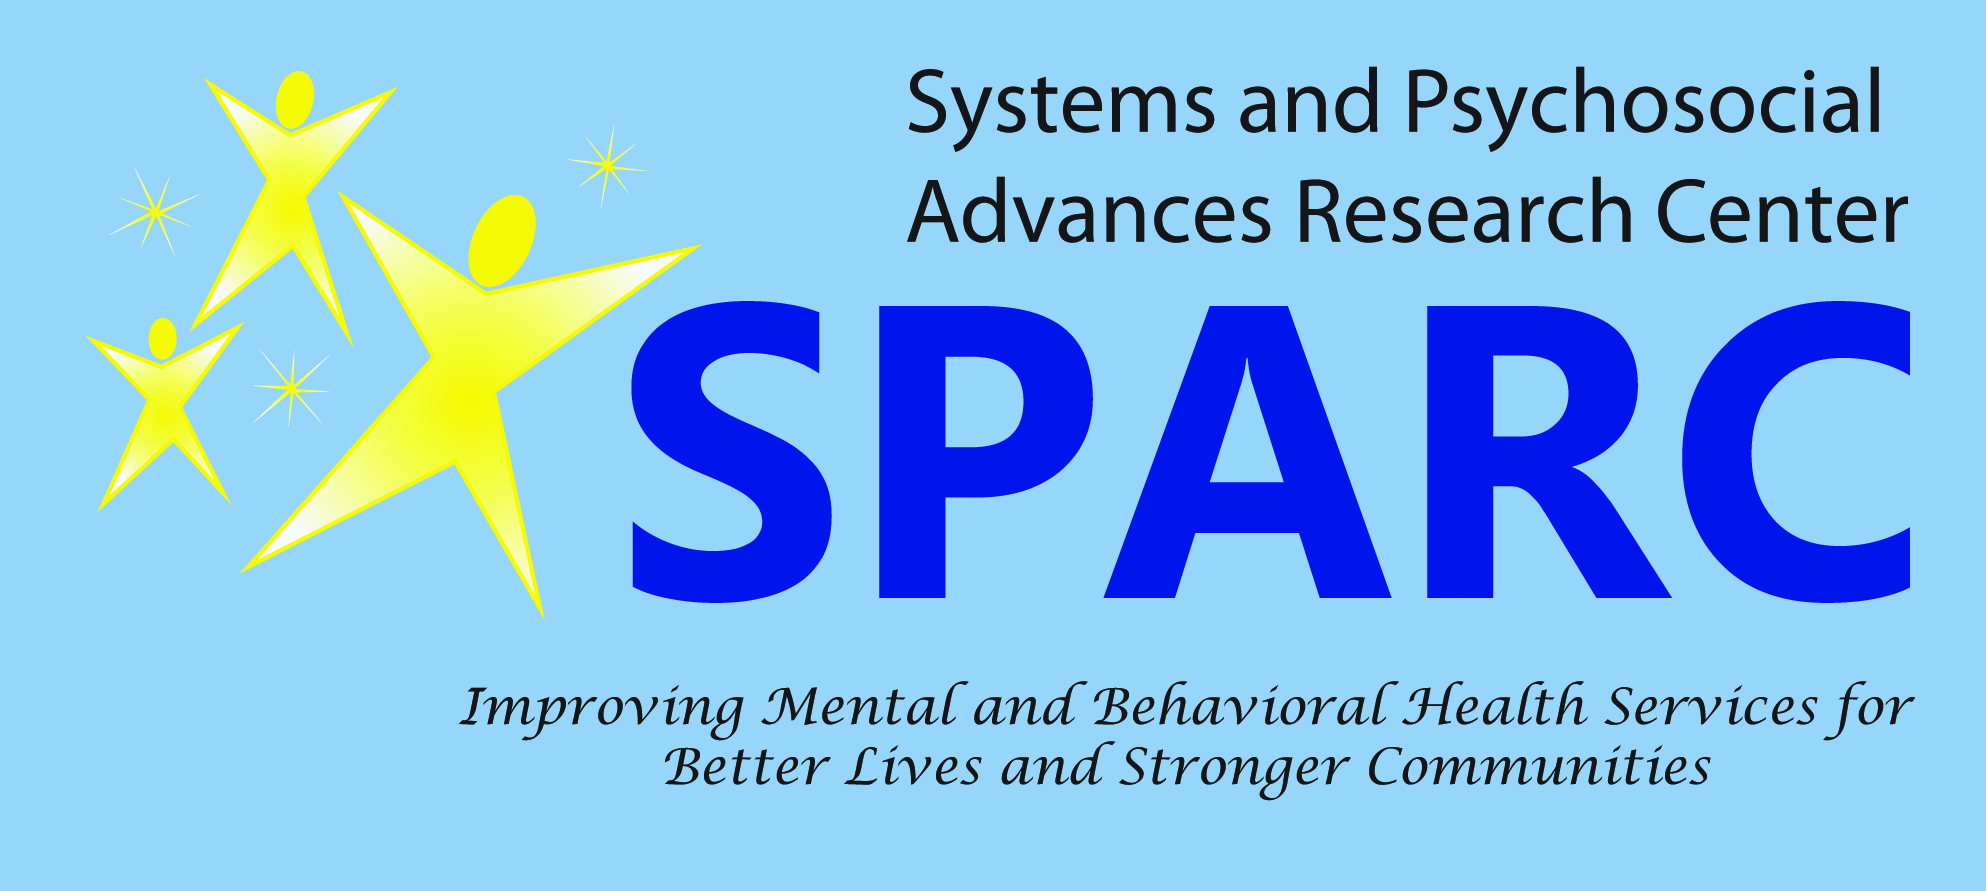 Department Of Psychiatry Systems And Psychosocial Advances